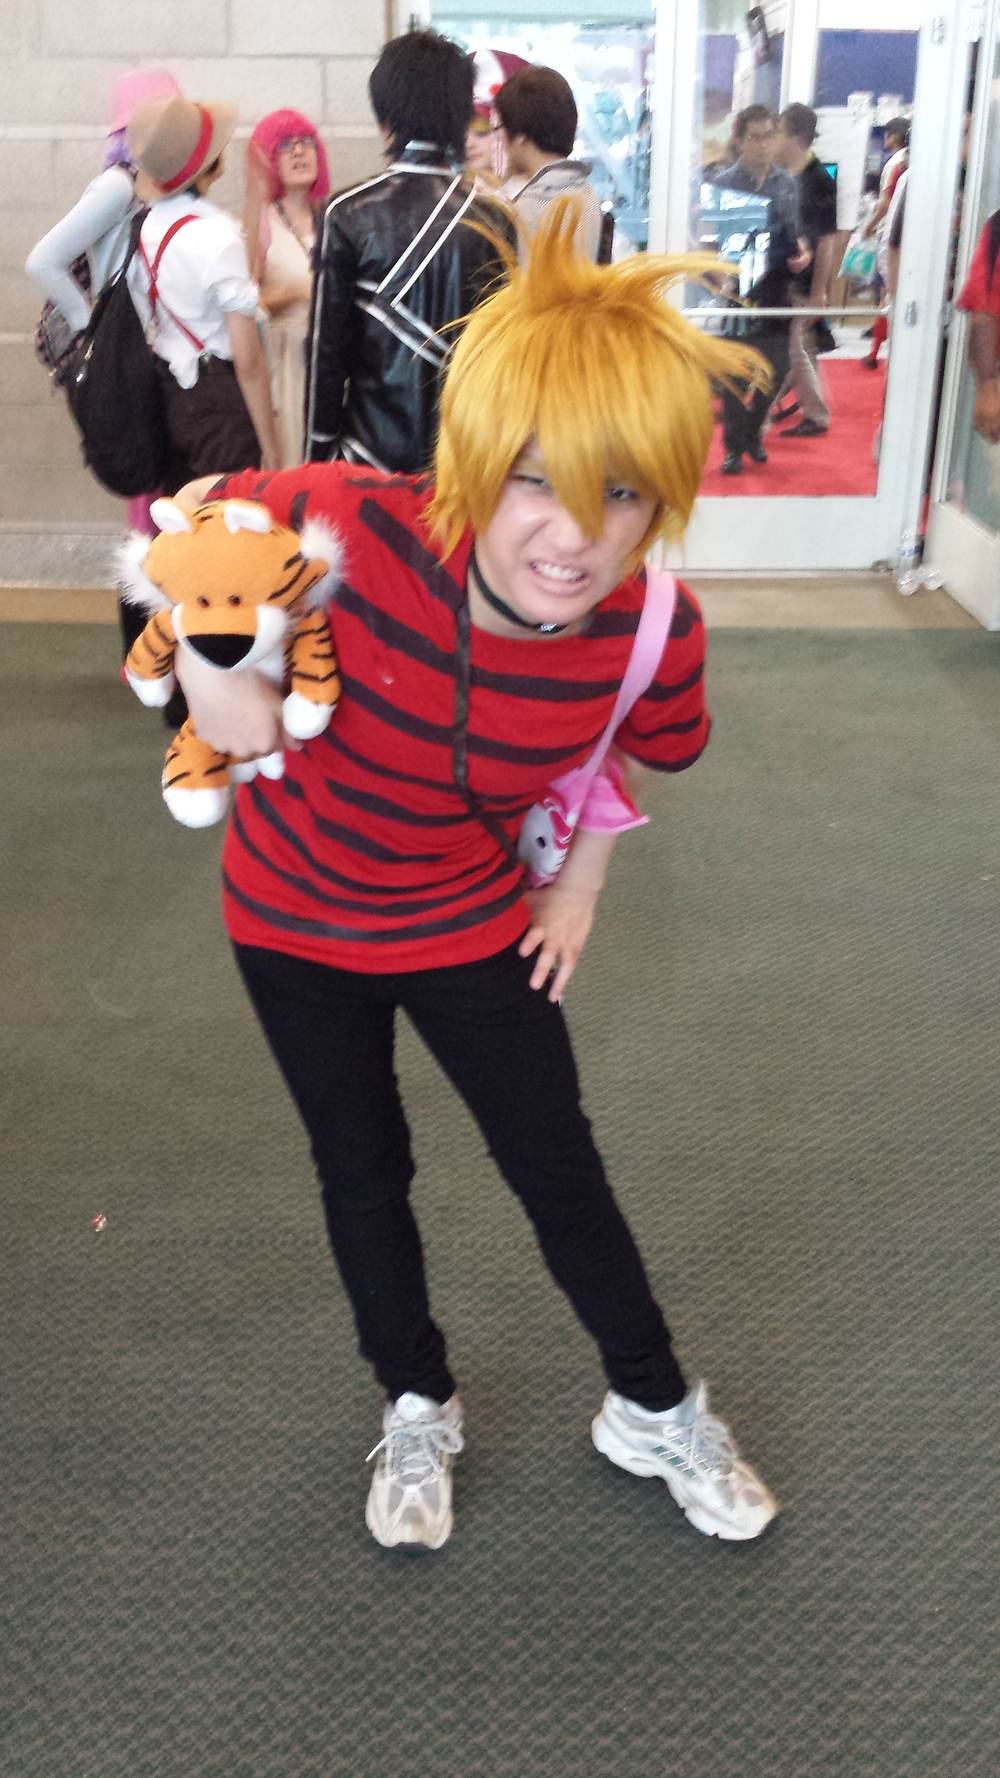 AnimeExpo 2013 - Calvin and Hobbes